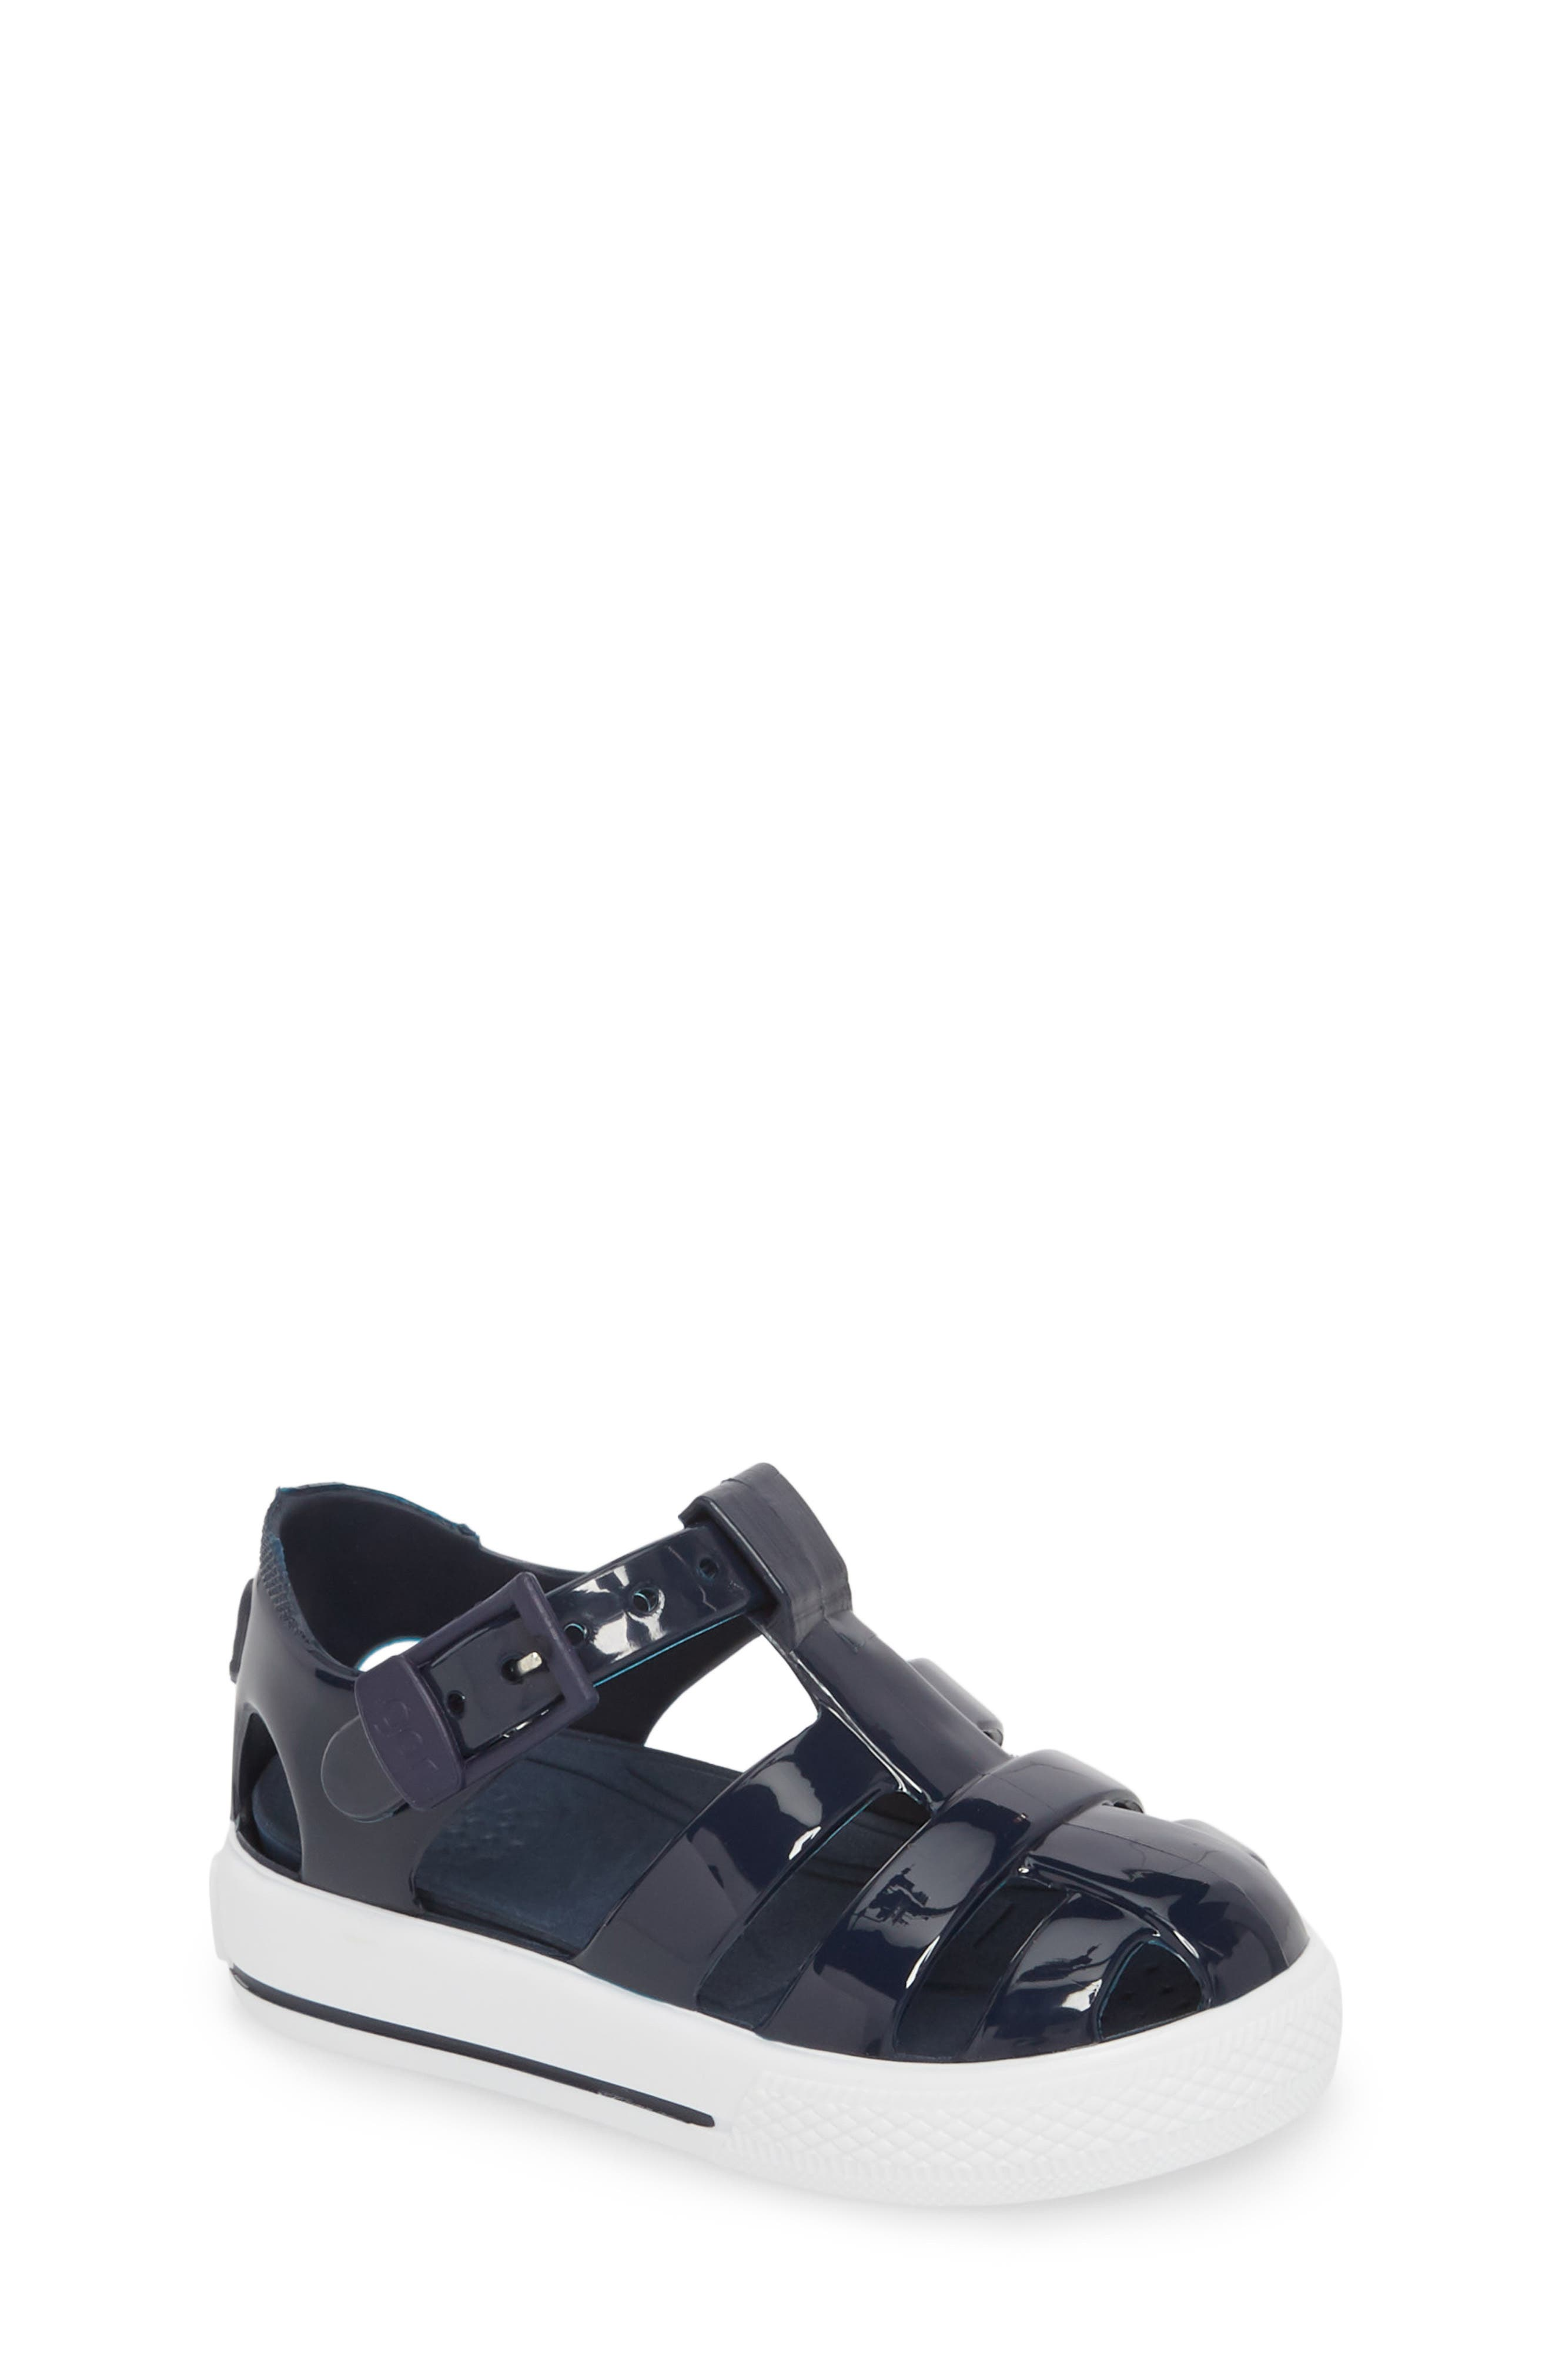 Tenis Fisherman Jelly Sandal,                         Main,                         color, Navy